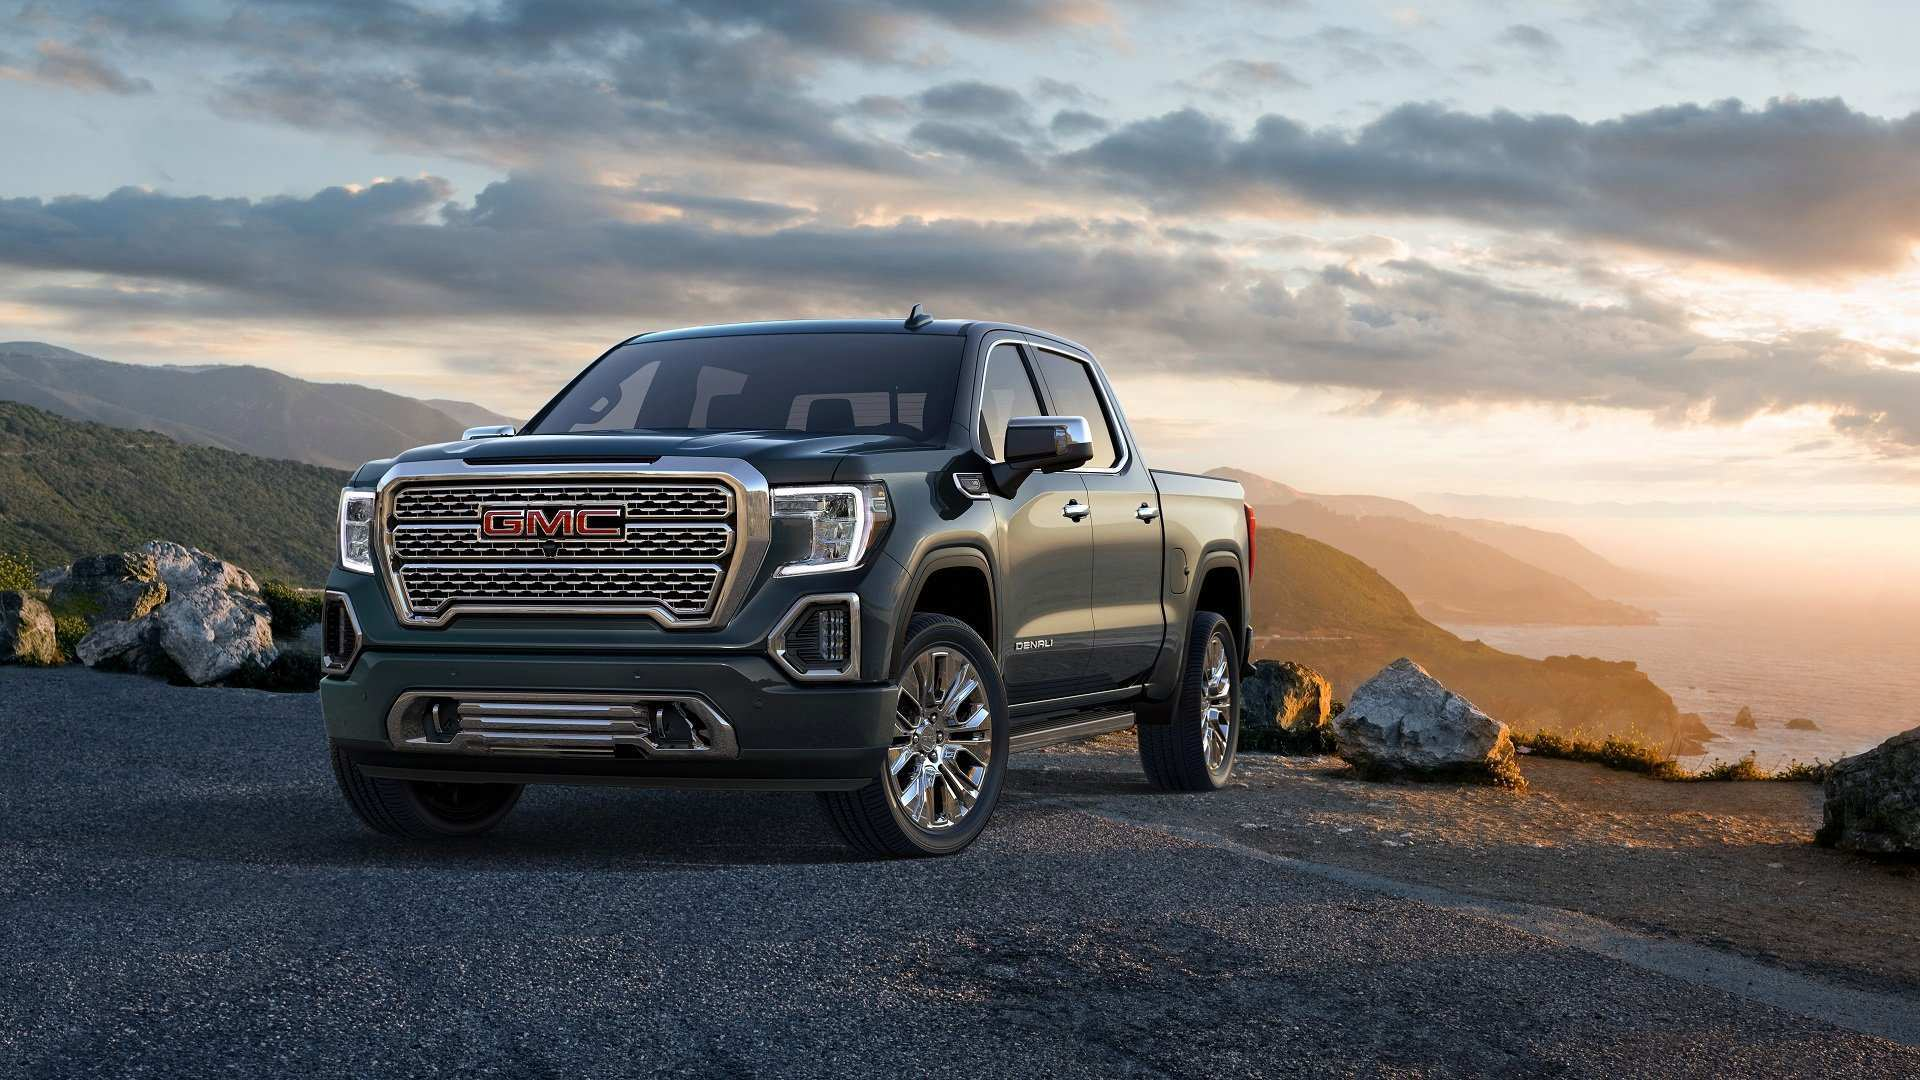 31 New 2019 Gmc 84 New Concept by 2019 Gmc 84